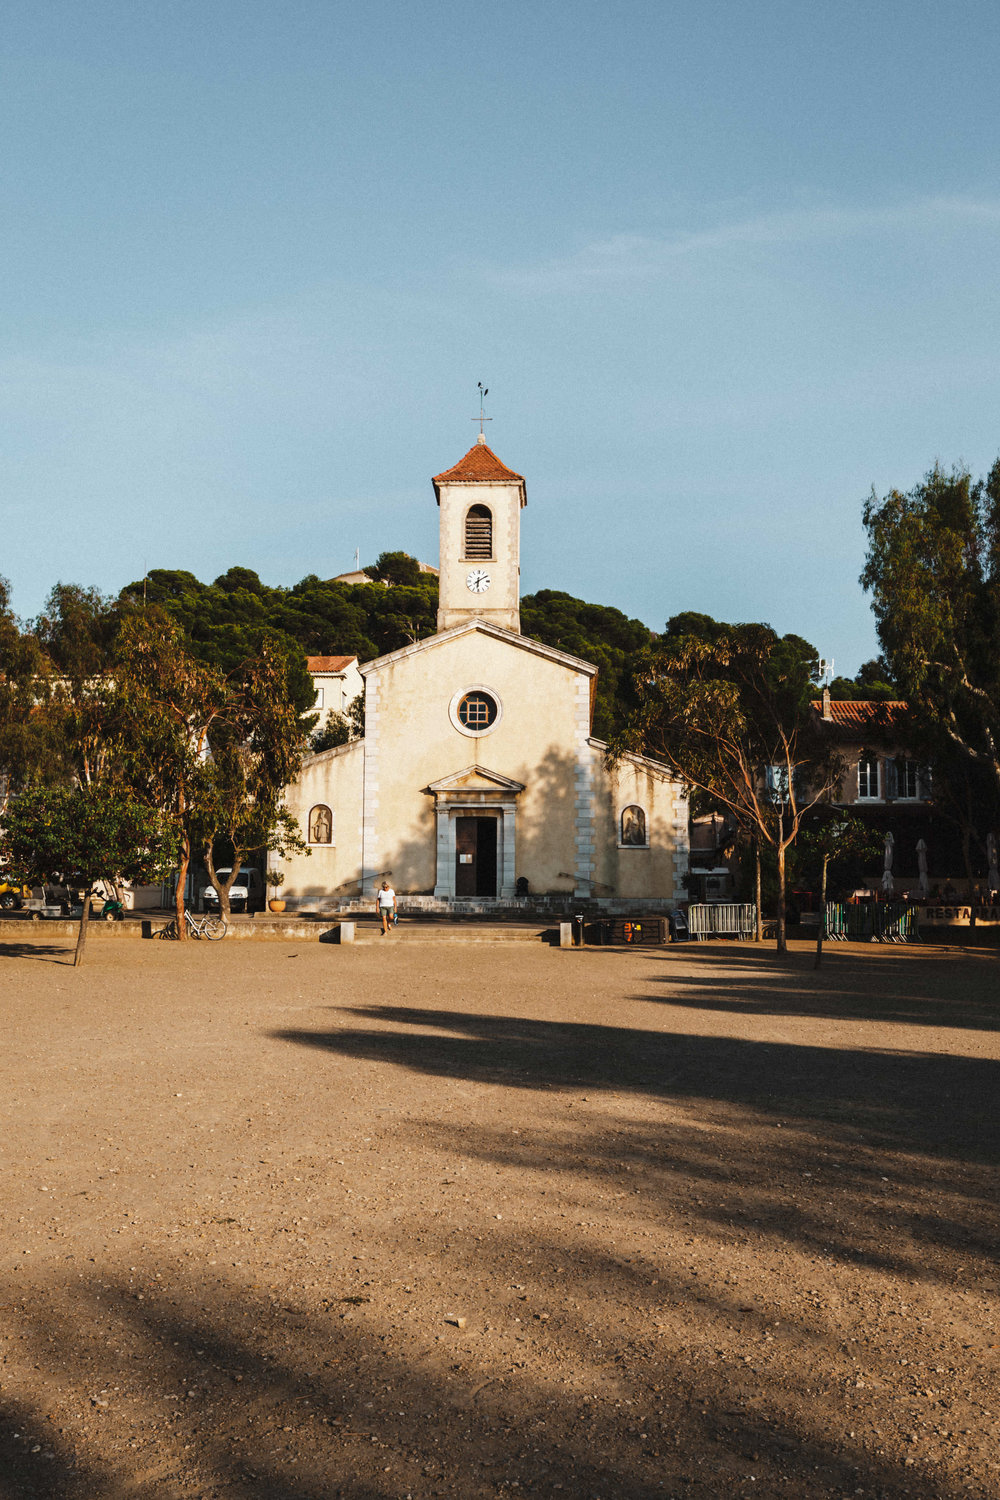 7 | Church of Porquerolles - Facing the square, the church is located in the Center of the village. With restaurants and shops all around. This is by far my favourite church and I always capture it while visiting the island. South of France, September 2018.